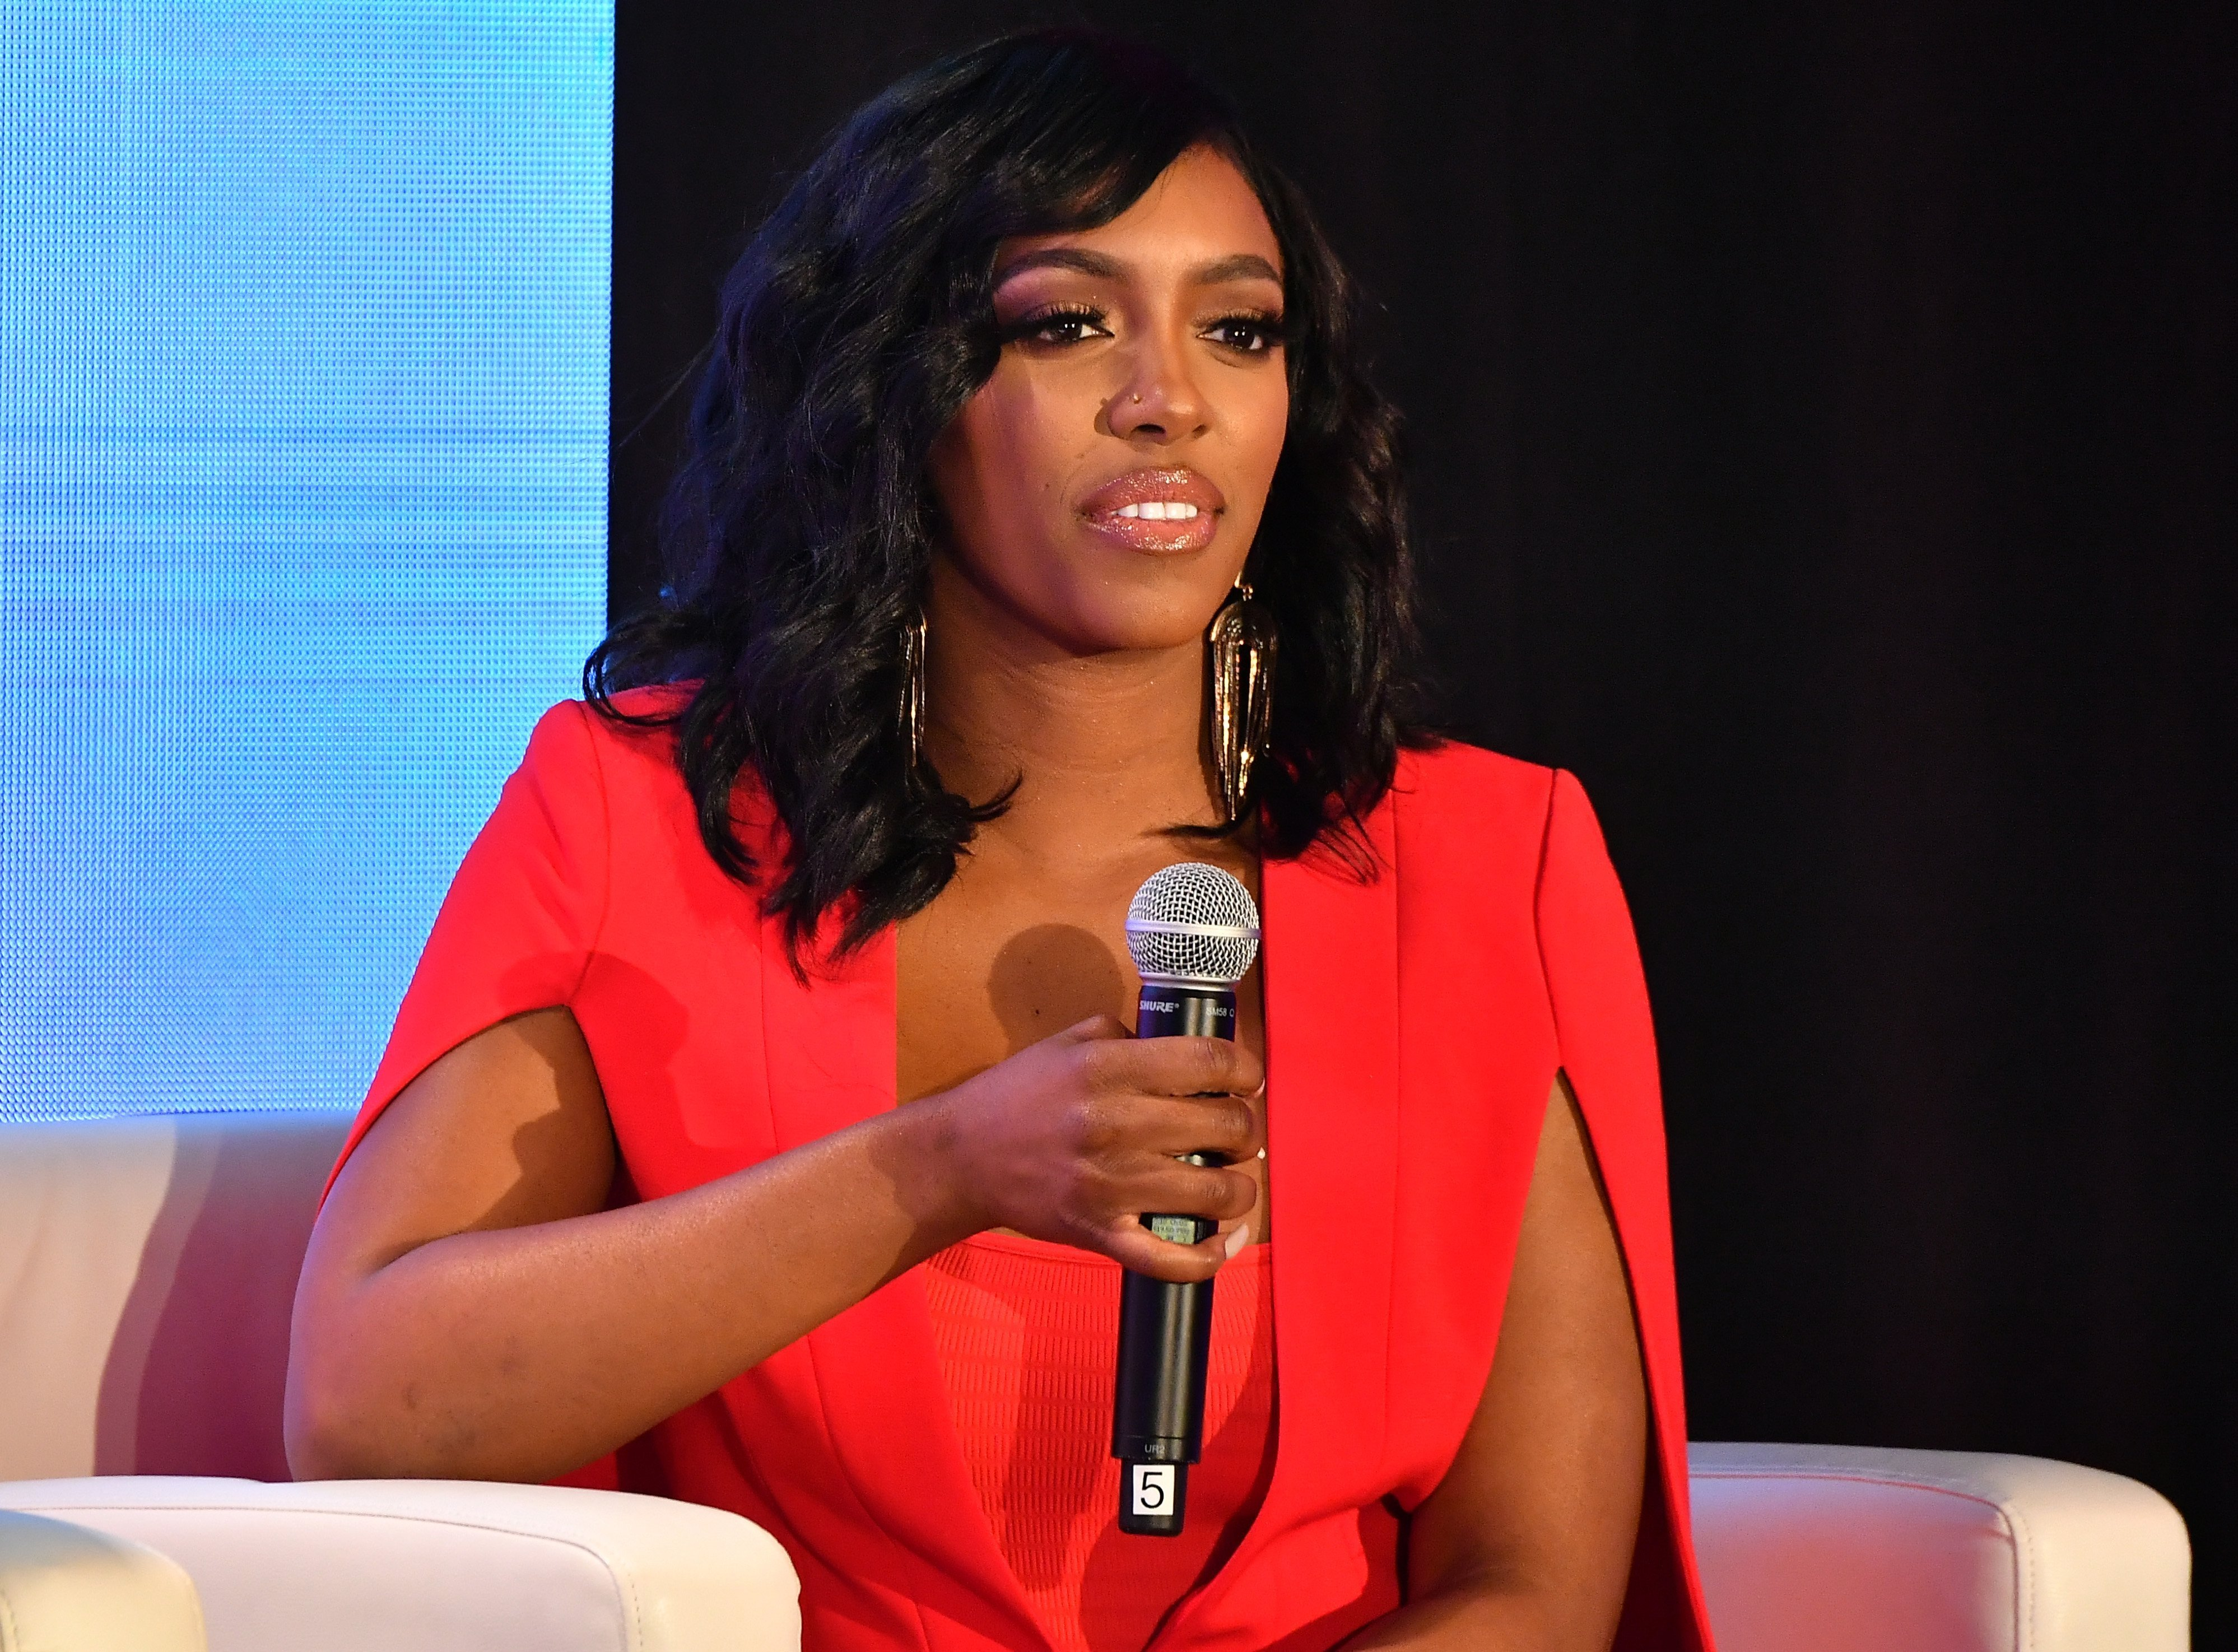 Porsha Williams onstage during A3C Festival & Conference on Oct. 10, 2019 in Atlanta, Georgia | Photo: Getty Images